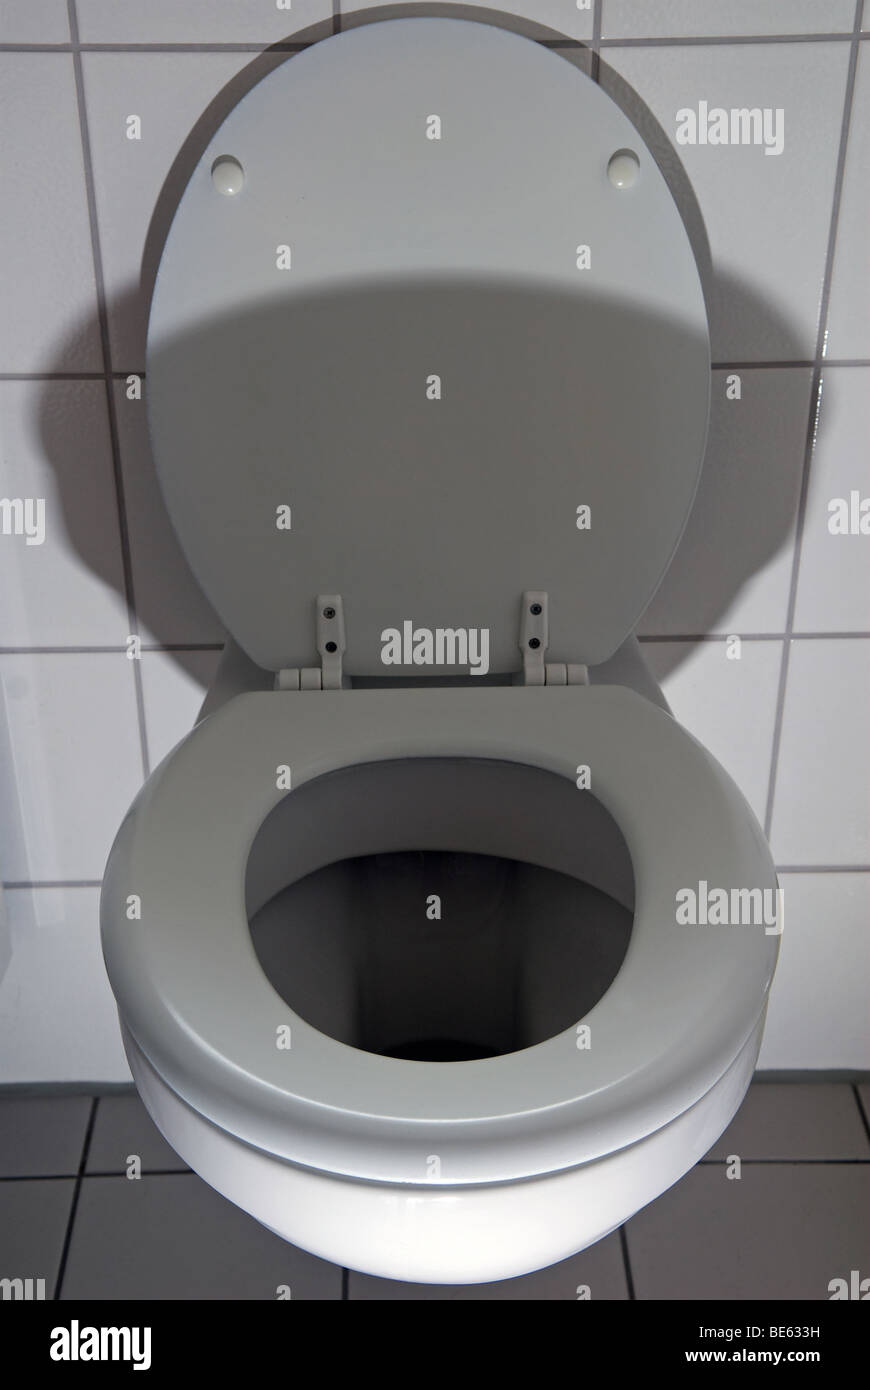 Germs Toilet Stock Photos Amp Germs Toilet Stock Images Alamy